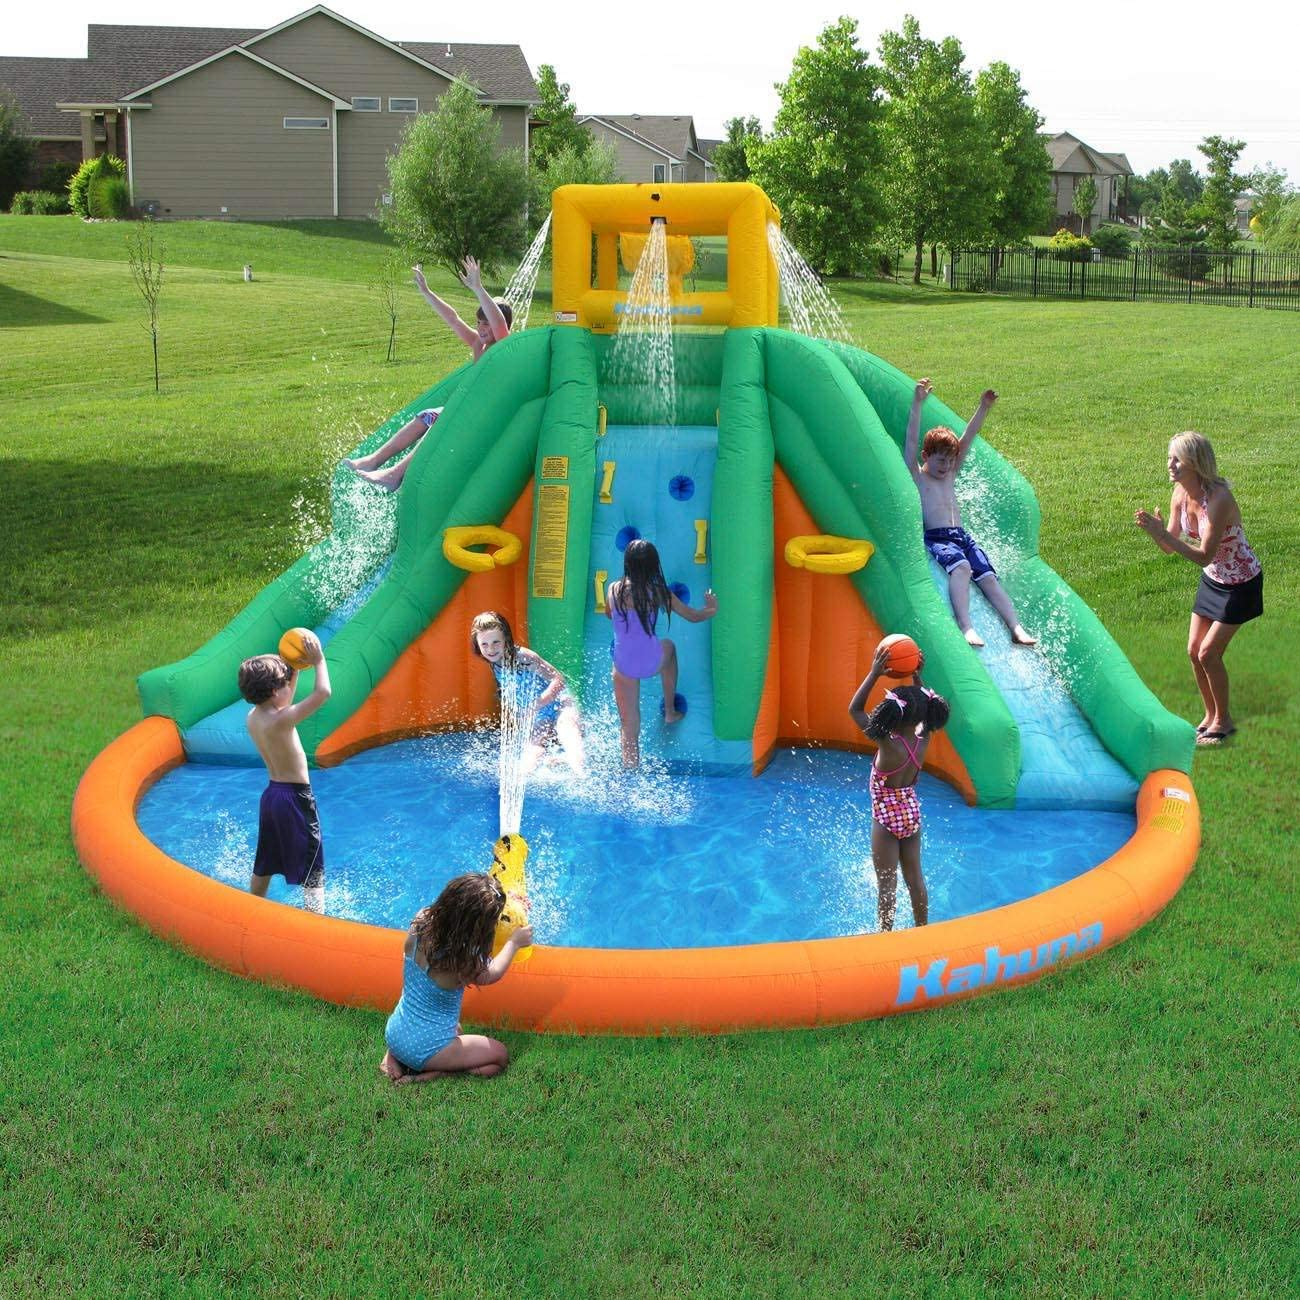 Top 11 Best Water Slide Pools Inflatable (2020 Reviews) 2